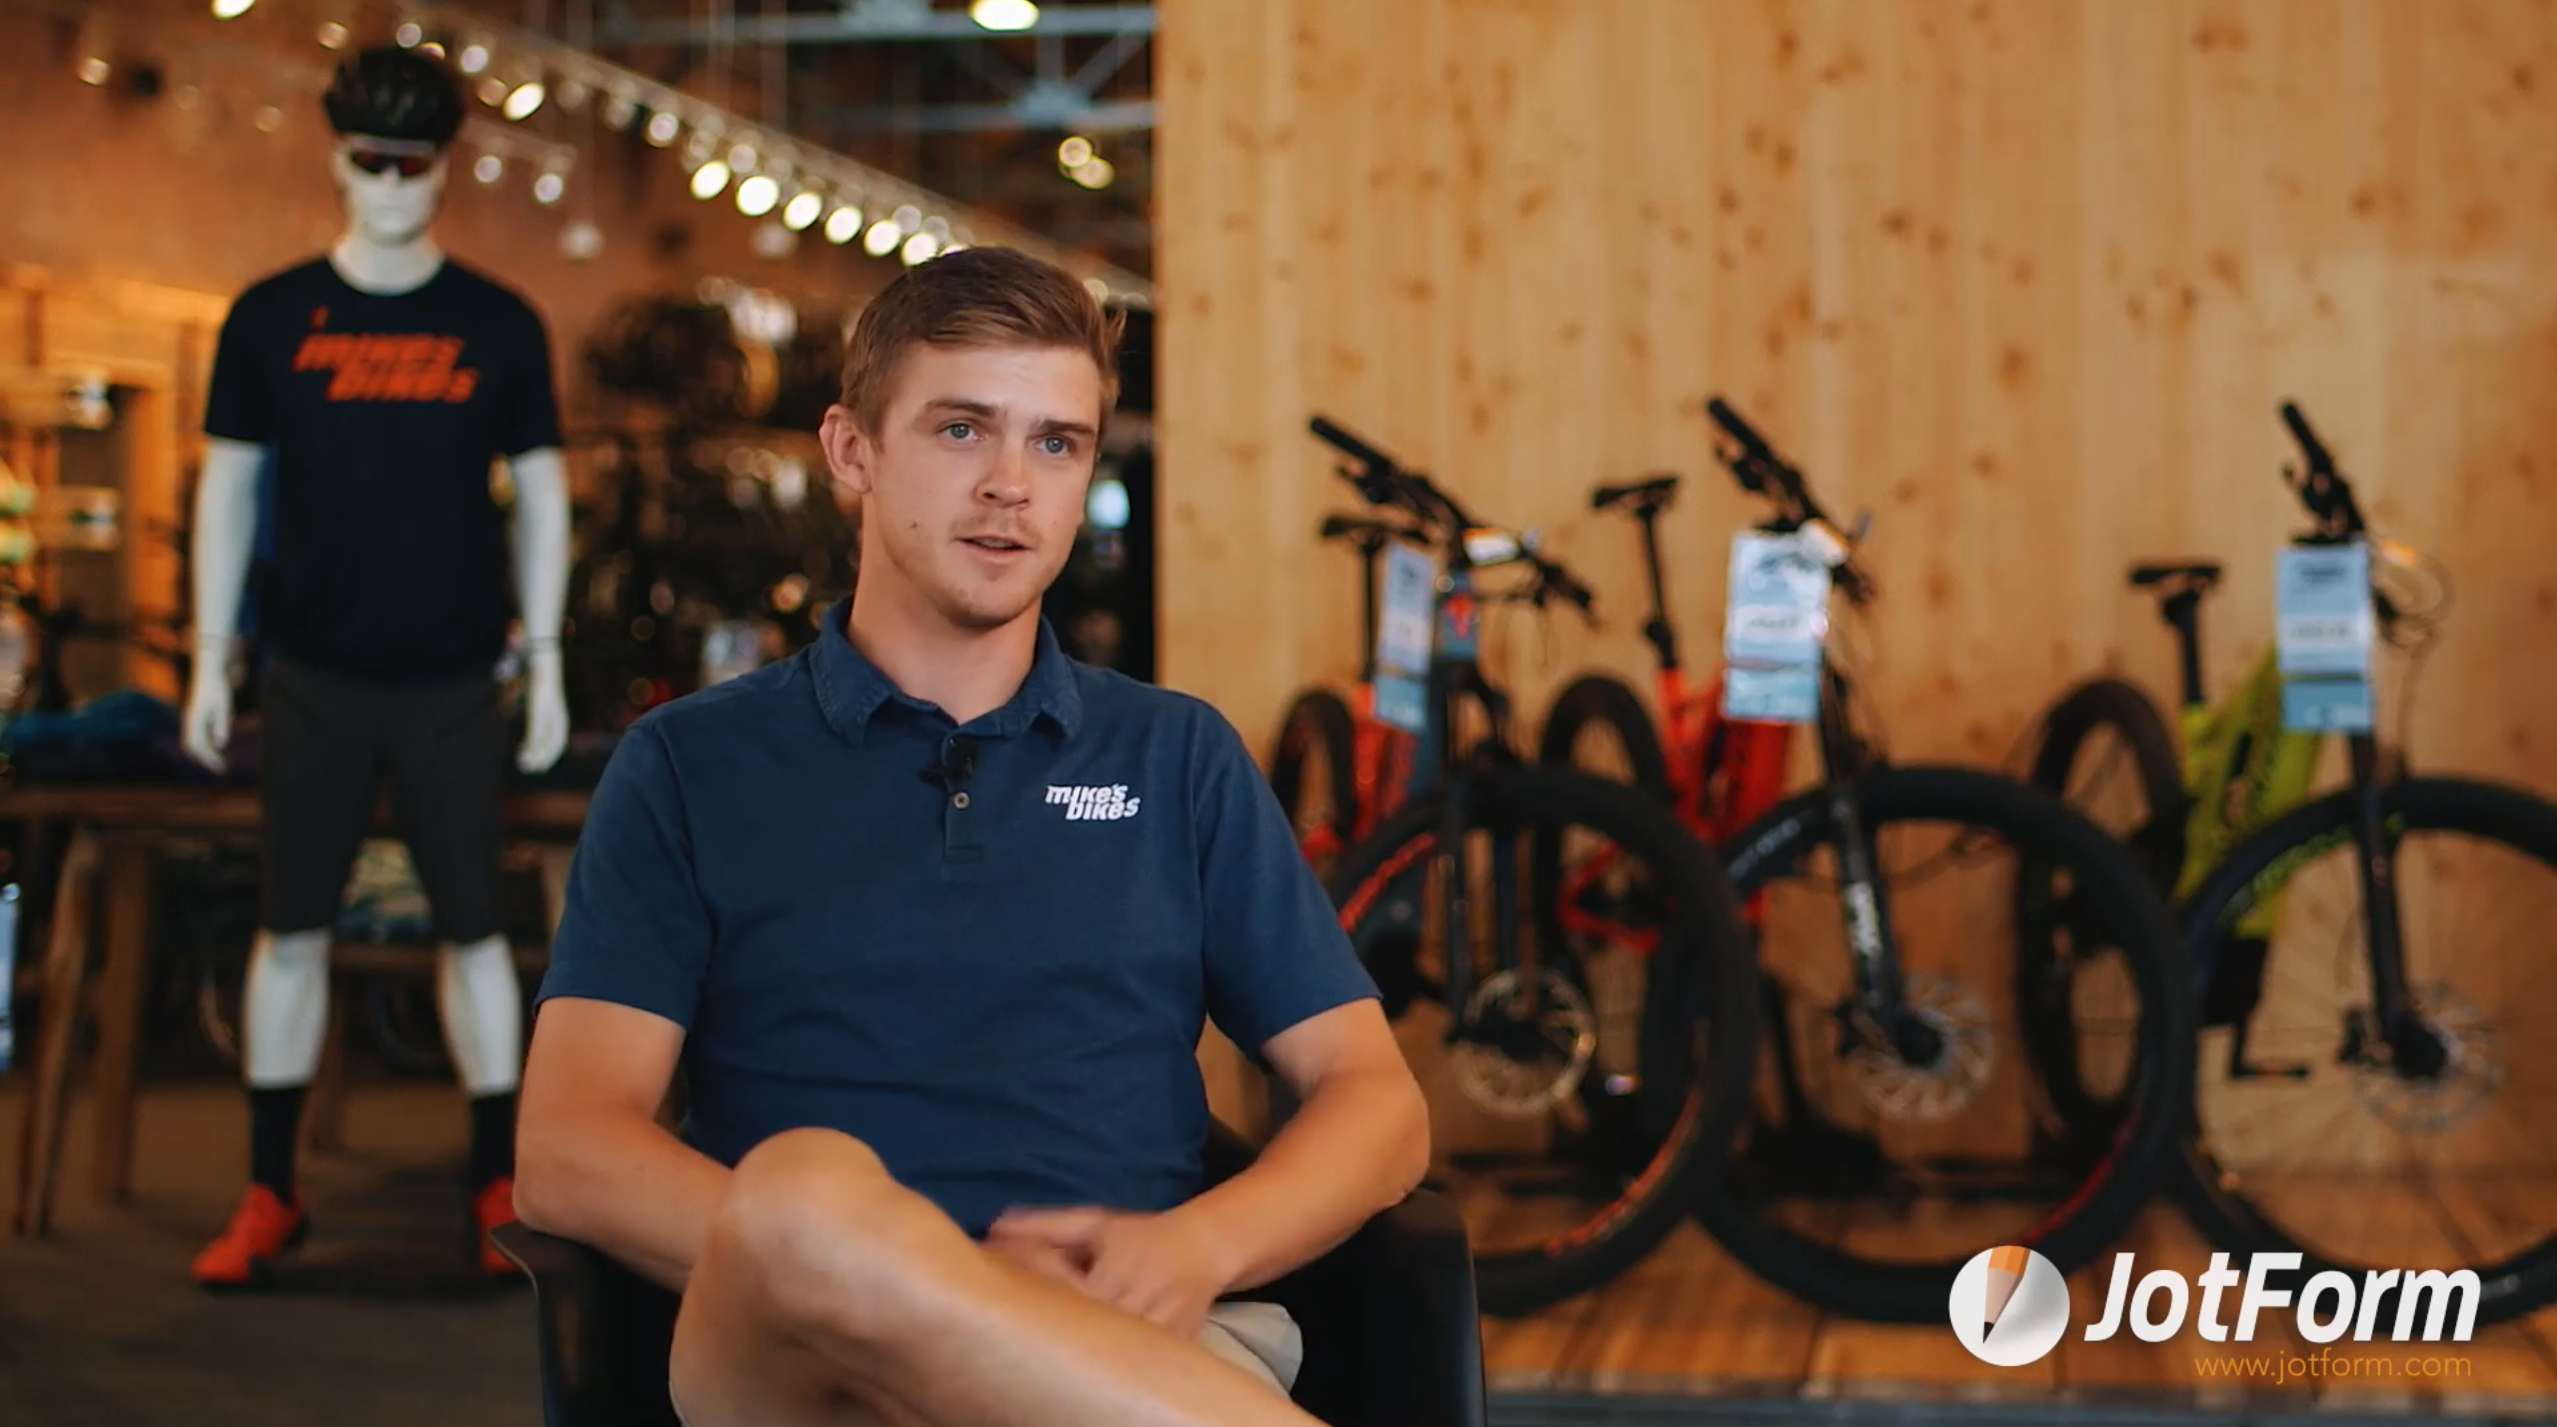 How Mike's Bikes uses JotForm and Trello to drive sales